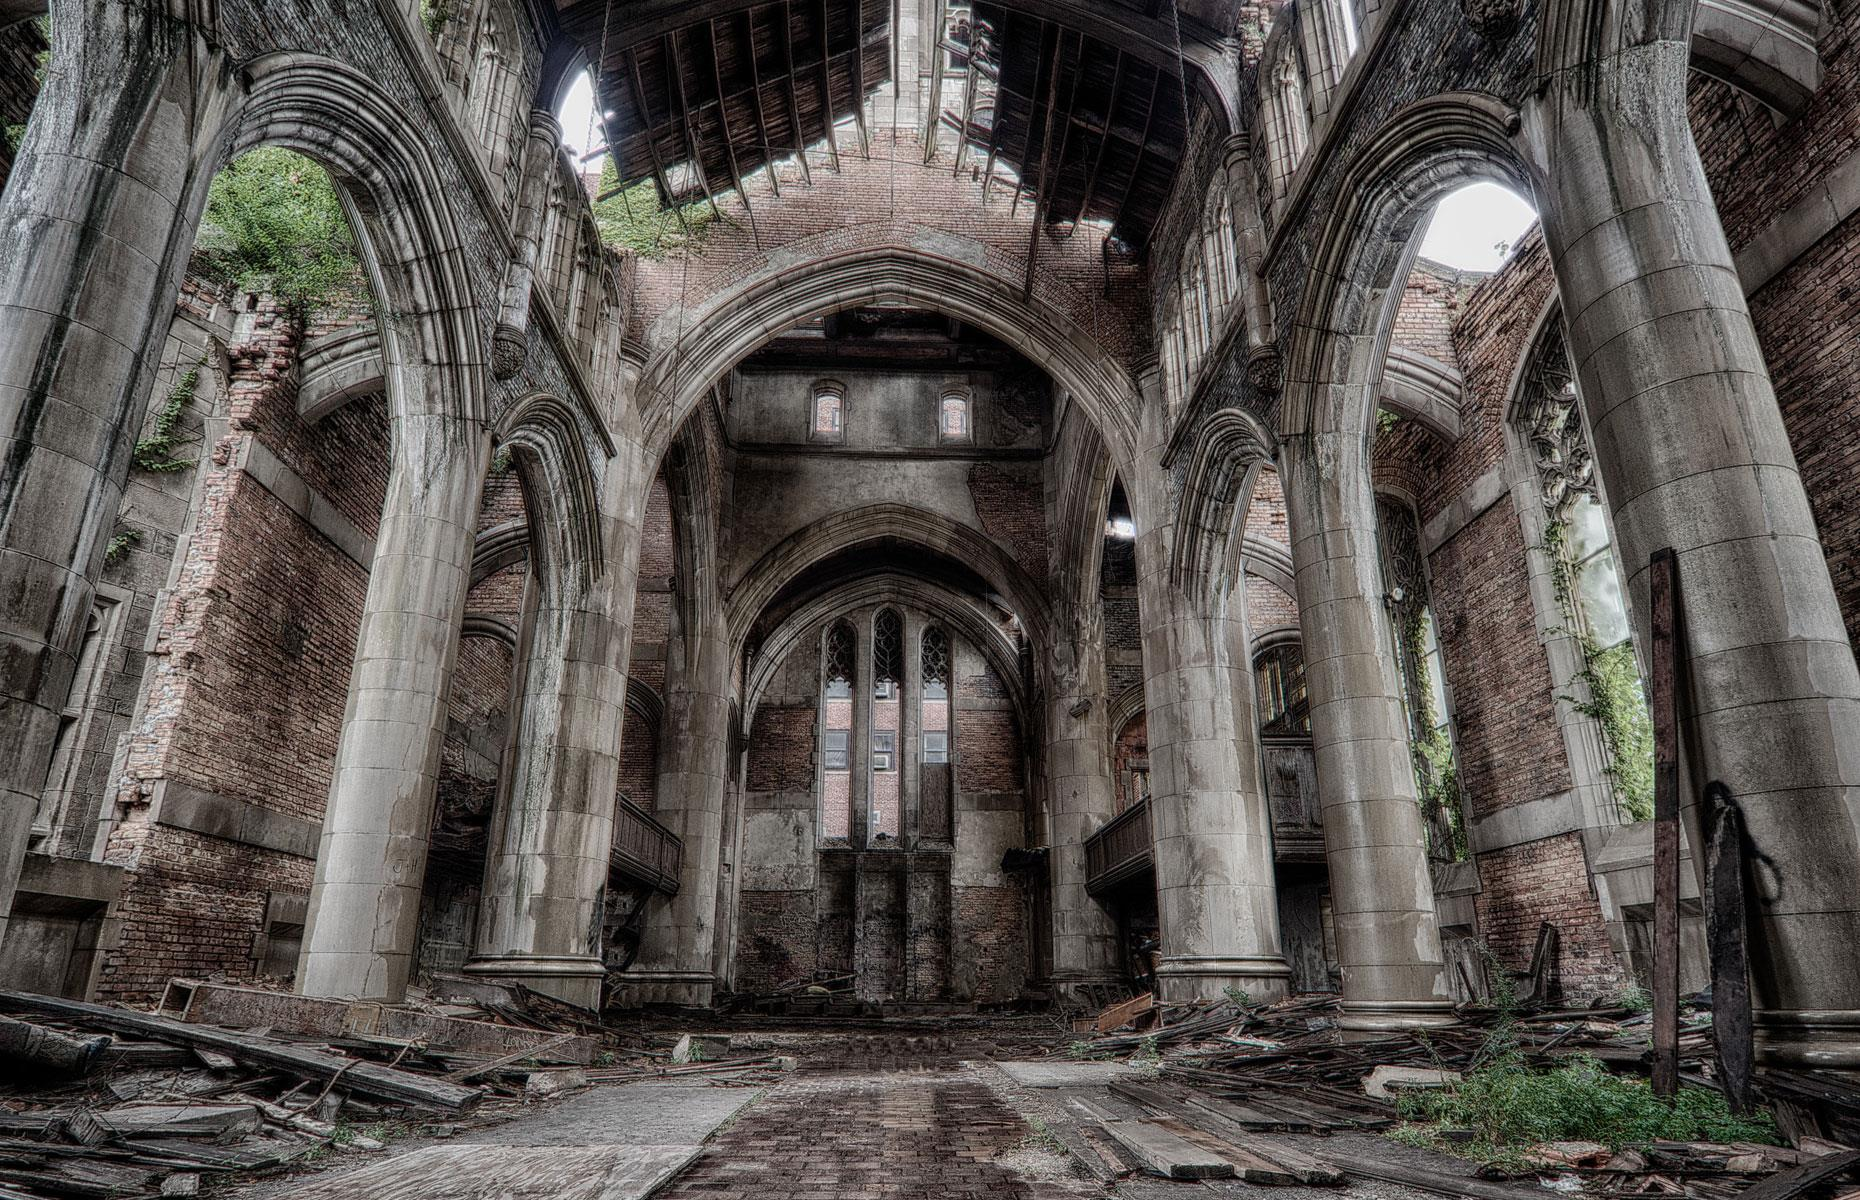 """Slide 29 of 101: By the 1970s, the congregation had dwindled and with those in charge unable to afford the mammoth maintenance costs, the church was forced to shut by 1975. The building sat decaying for decades, but now plans are well underway to turn the site into a """"ruin garden"""" in which the abandoned church's haunting remains will take center stage."""